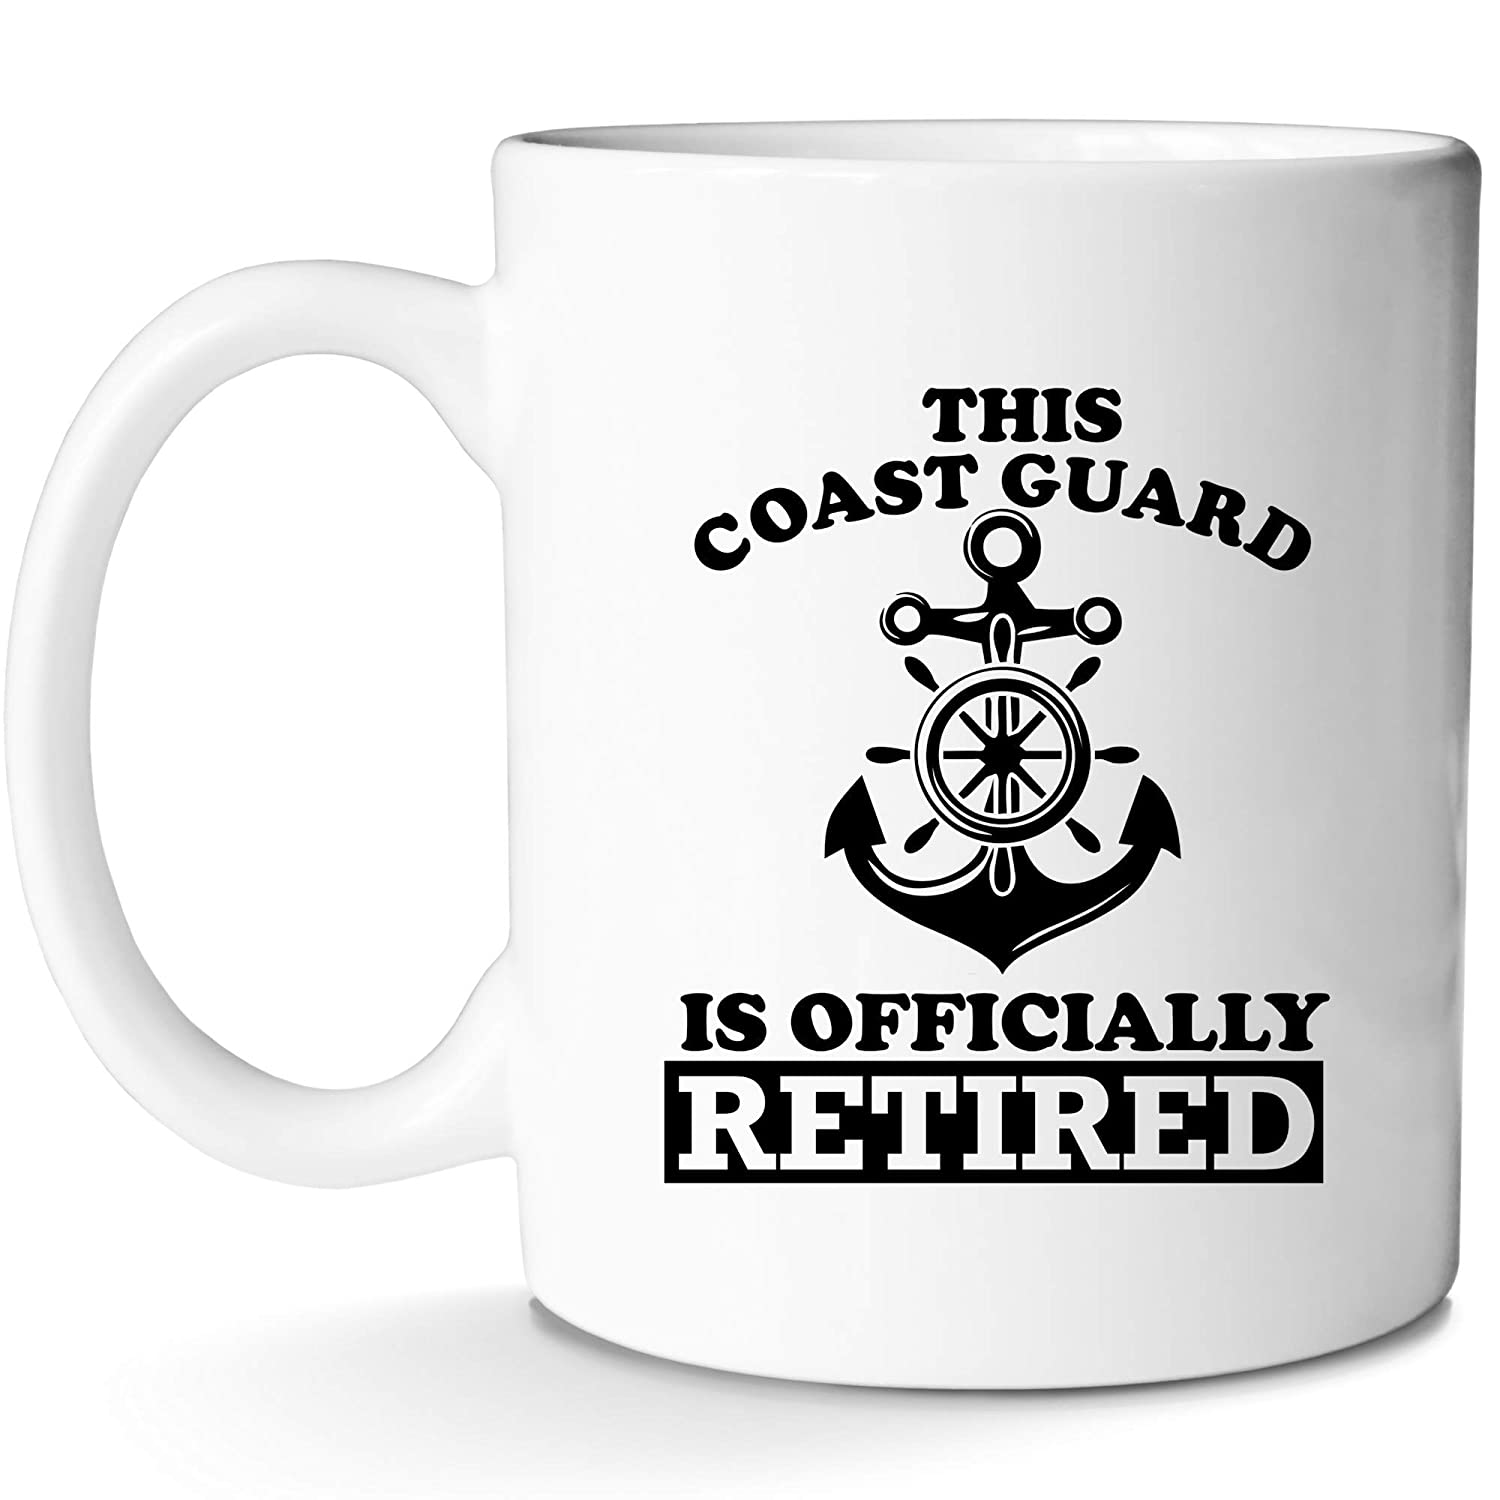 Coast Guard Retired Mug for US Legend Funny Novelty Present for Man or Woman Cool Great Coffee Cup Gift Idea With Prime by Mugish 11oz